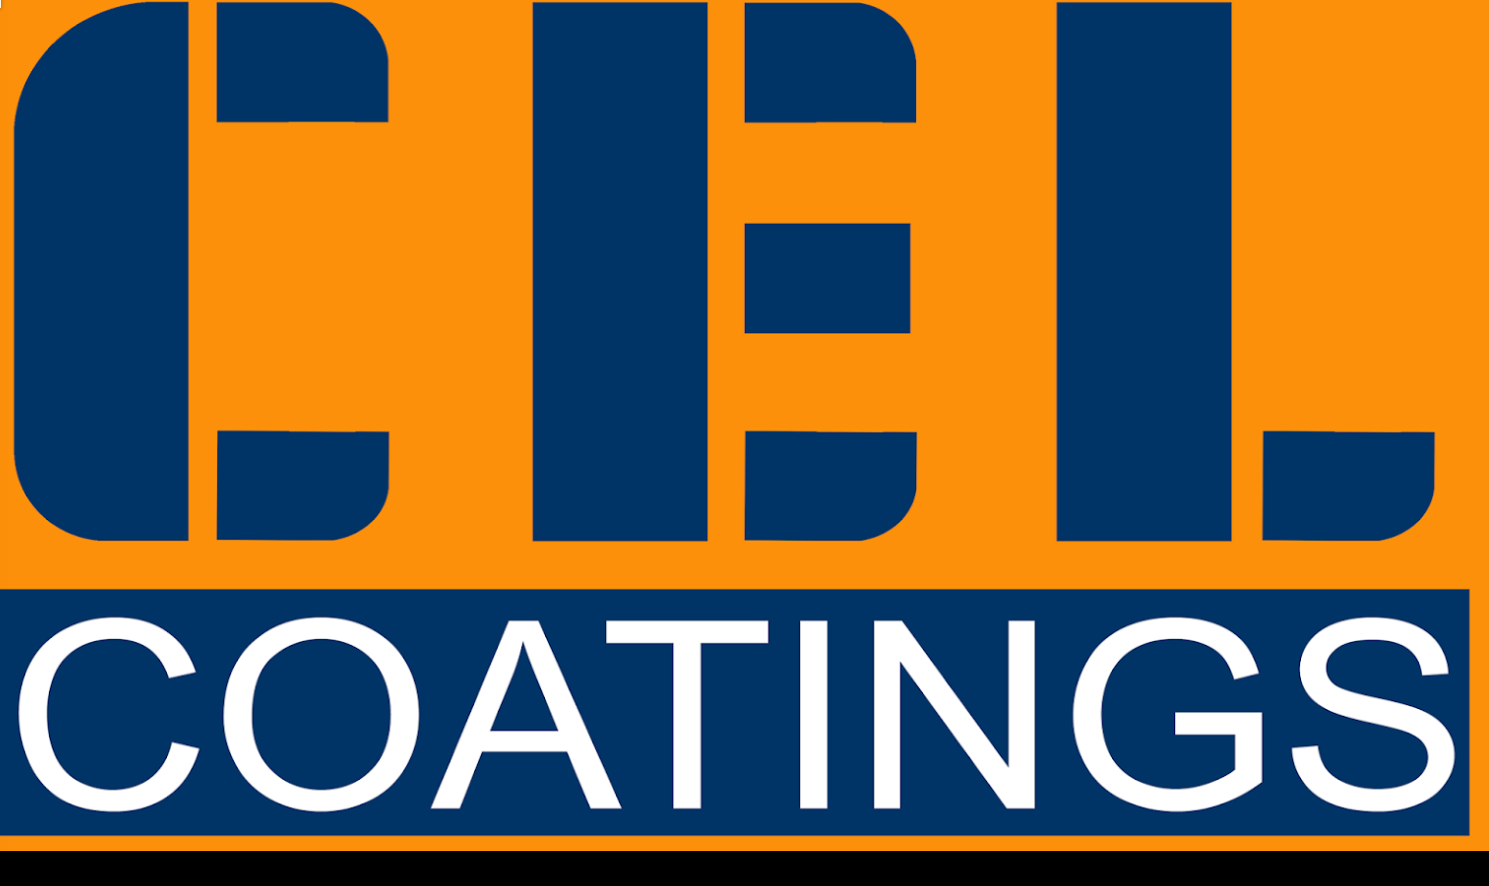 Cel Coatings Industries Pte Ltd - ERP System